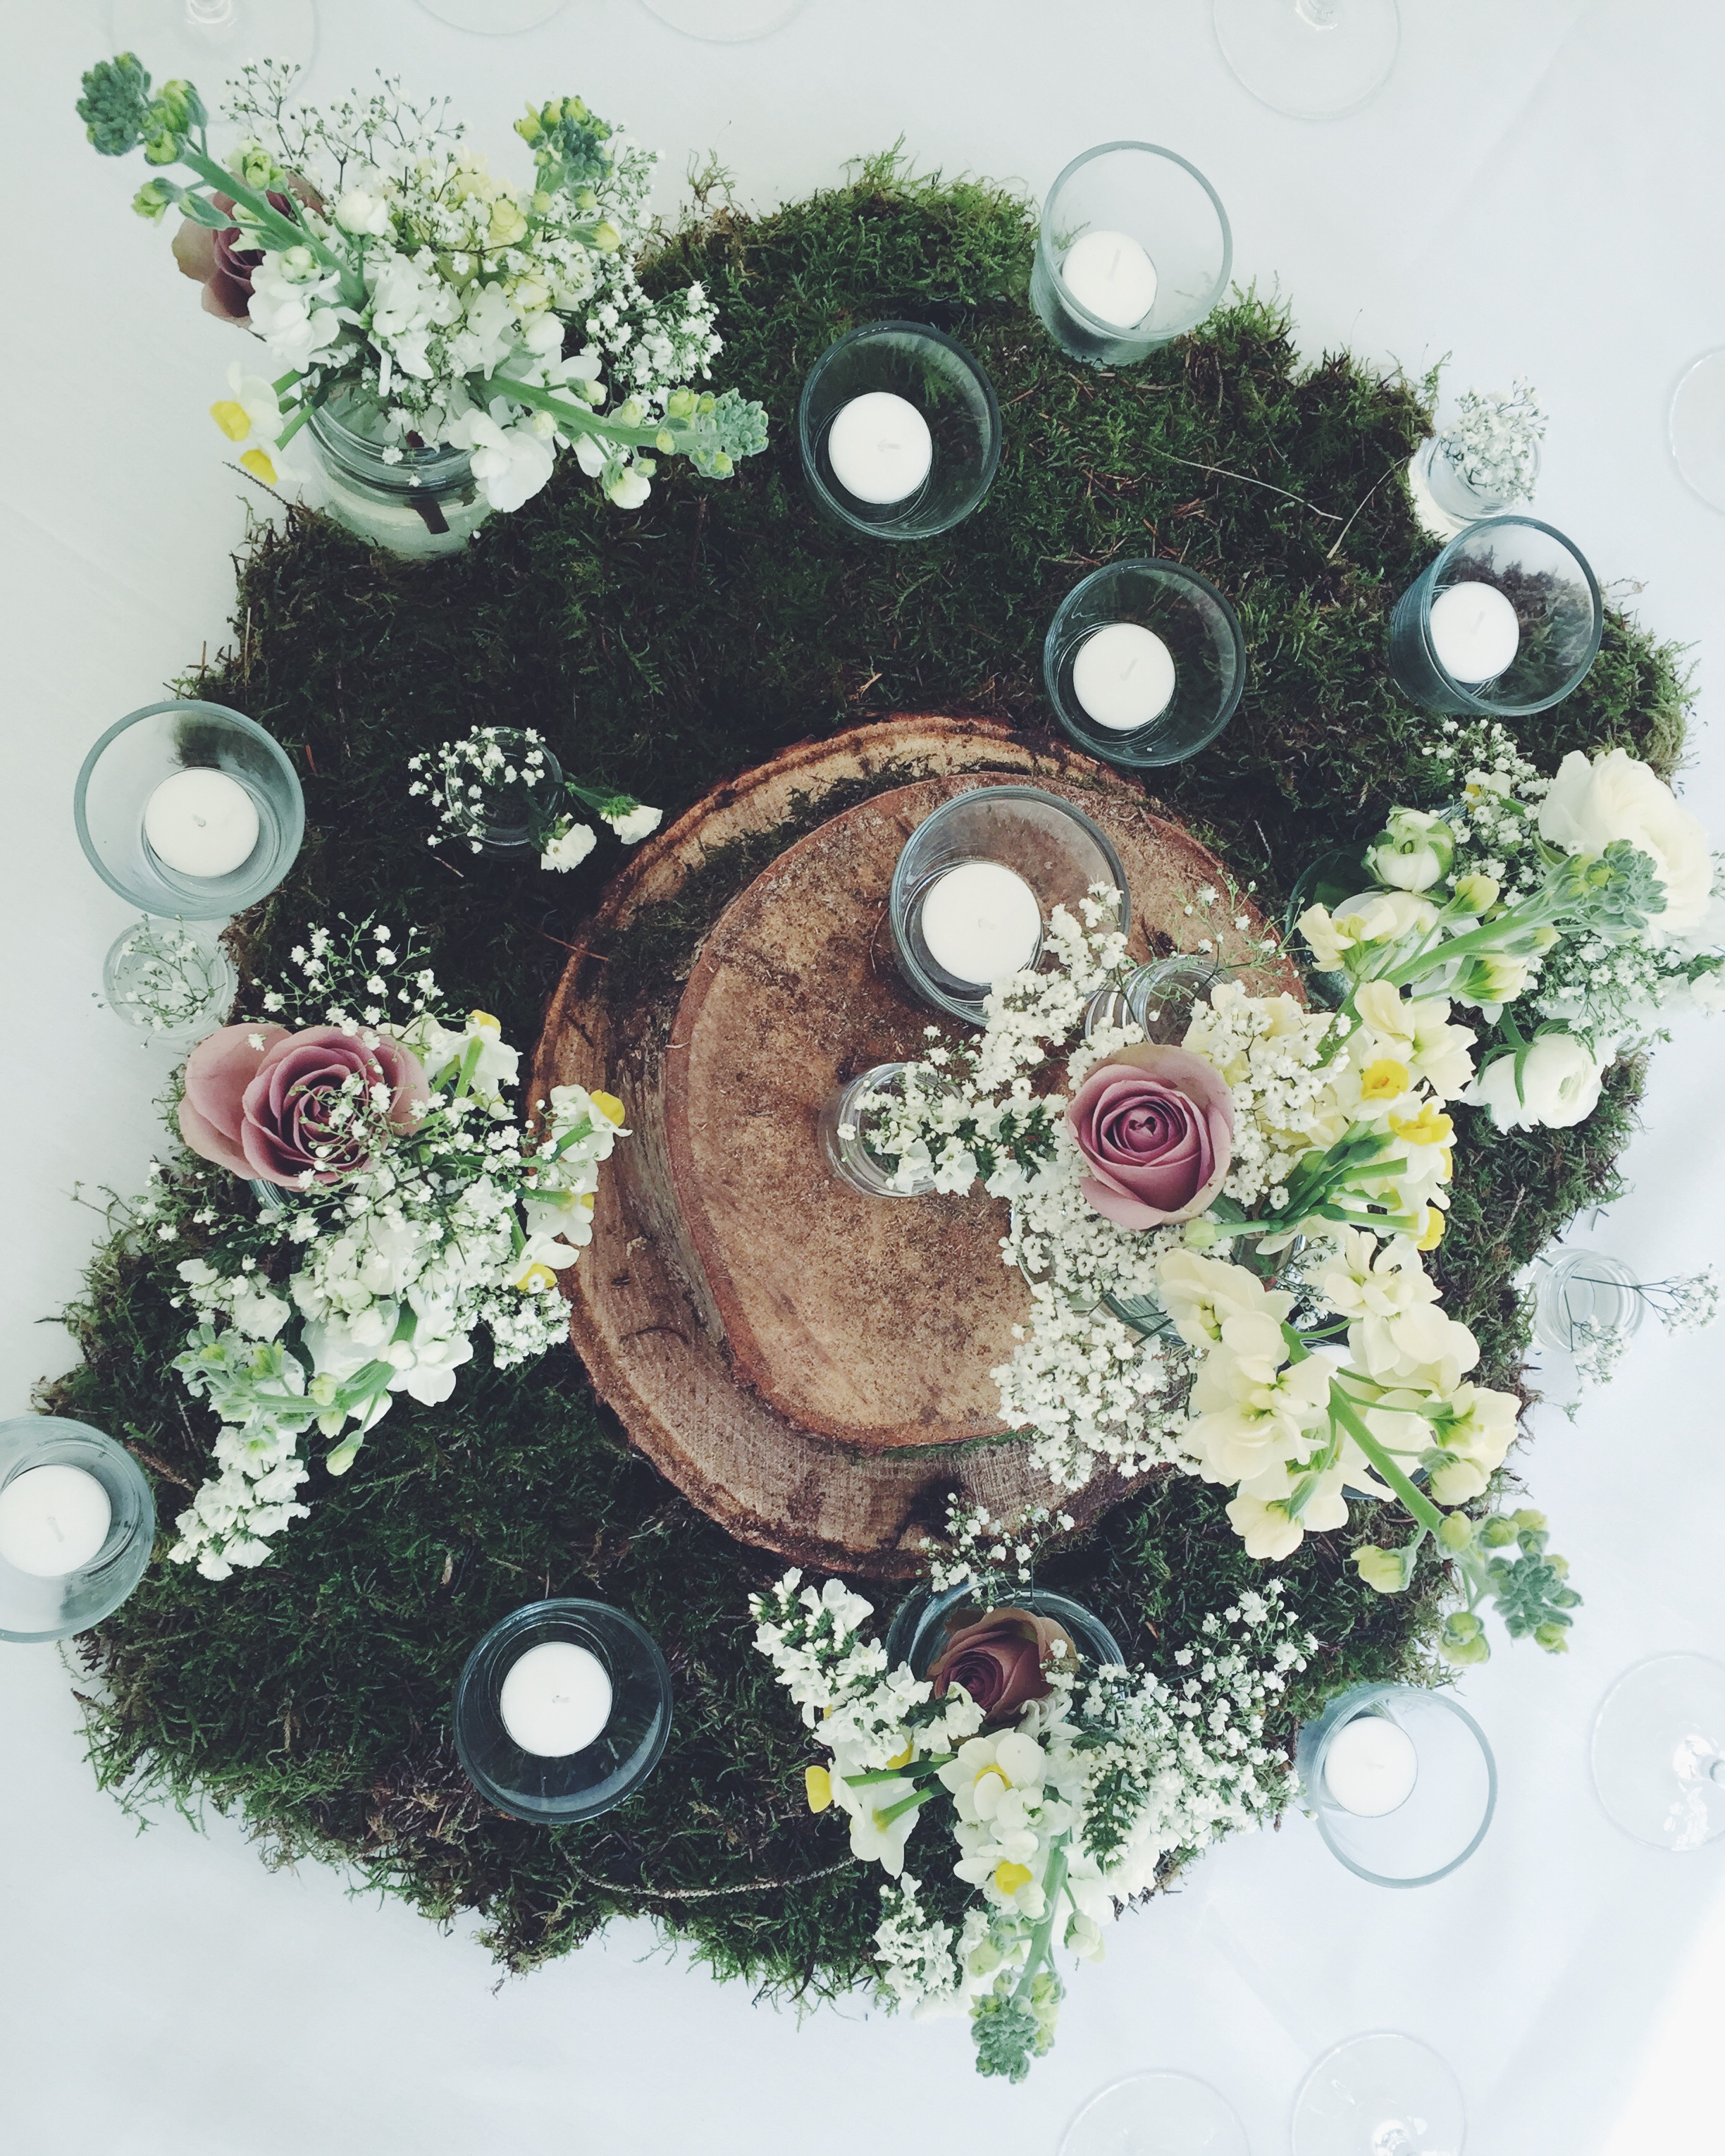 wedding table centrepiece by Jennifer Pinder at Fulham Palace in London. Includes moss, wooden slices and jam jar flowers with gypsophila, stock, roses, ranunculus and narcissi